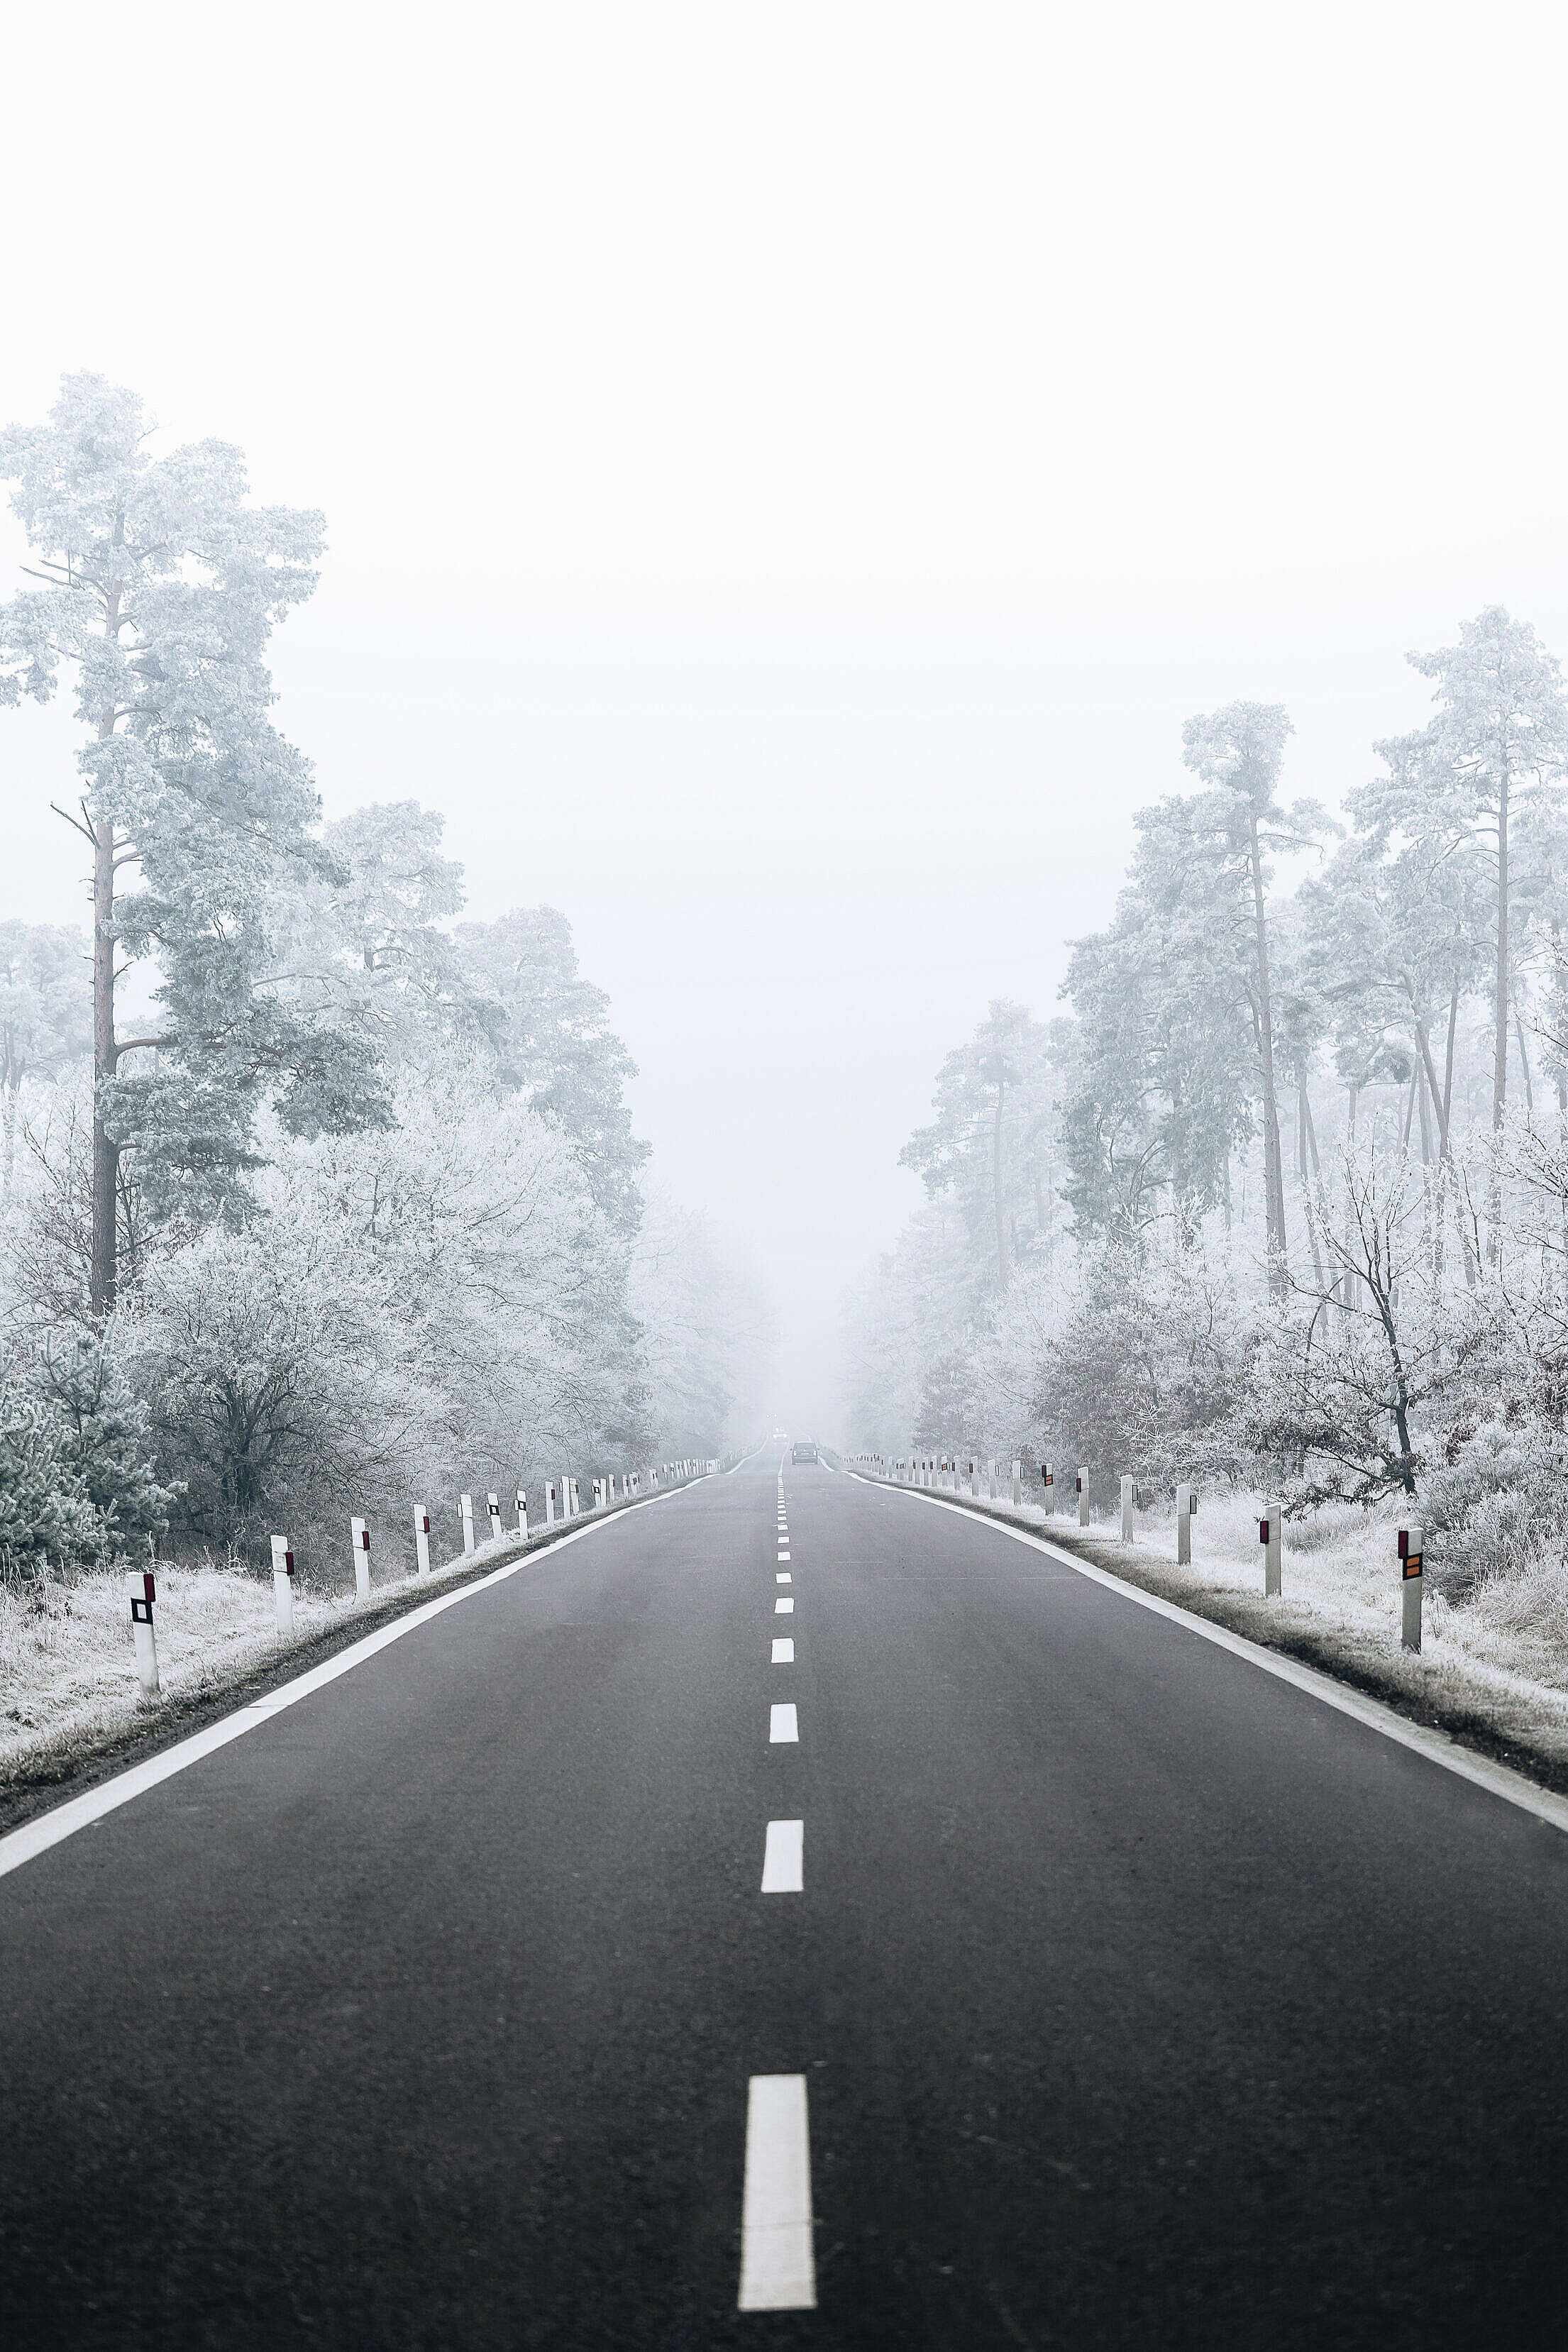 Road Through Snowy Forest Free Stock Photo